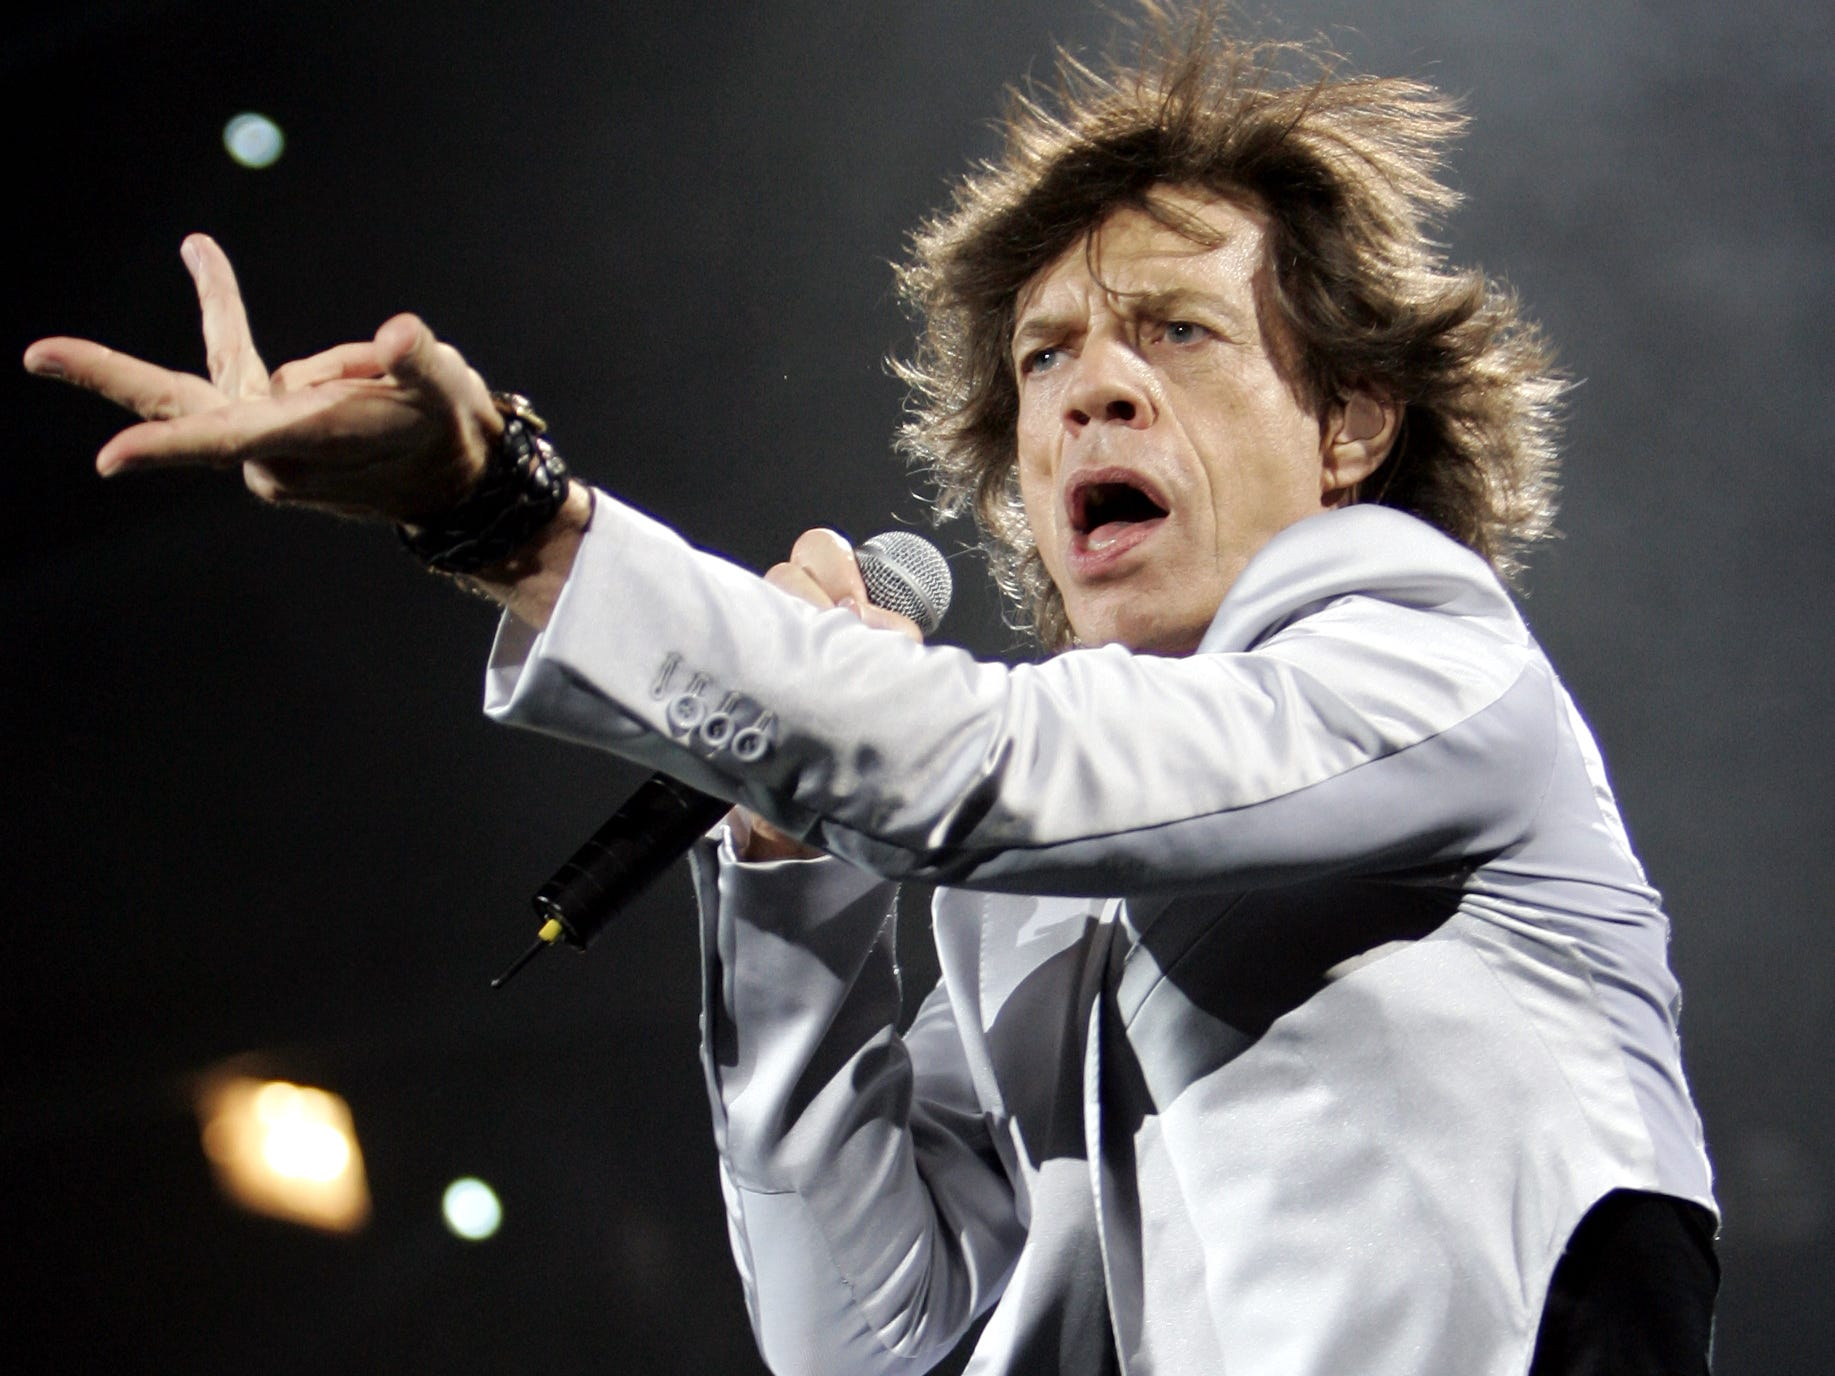 Rolling Stones' Mick Jagger performs during the opening night of their U.S. tour in Boston, Tuesday, Sept. 3, 2002. (AP Photo/Winslow Townson)